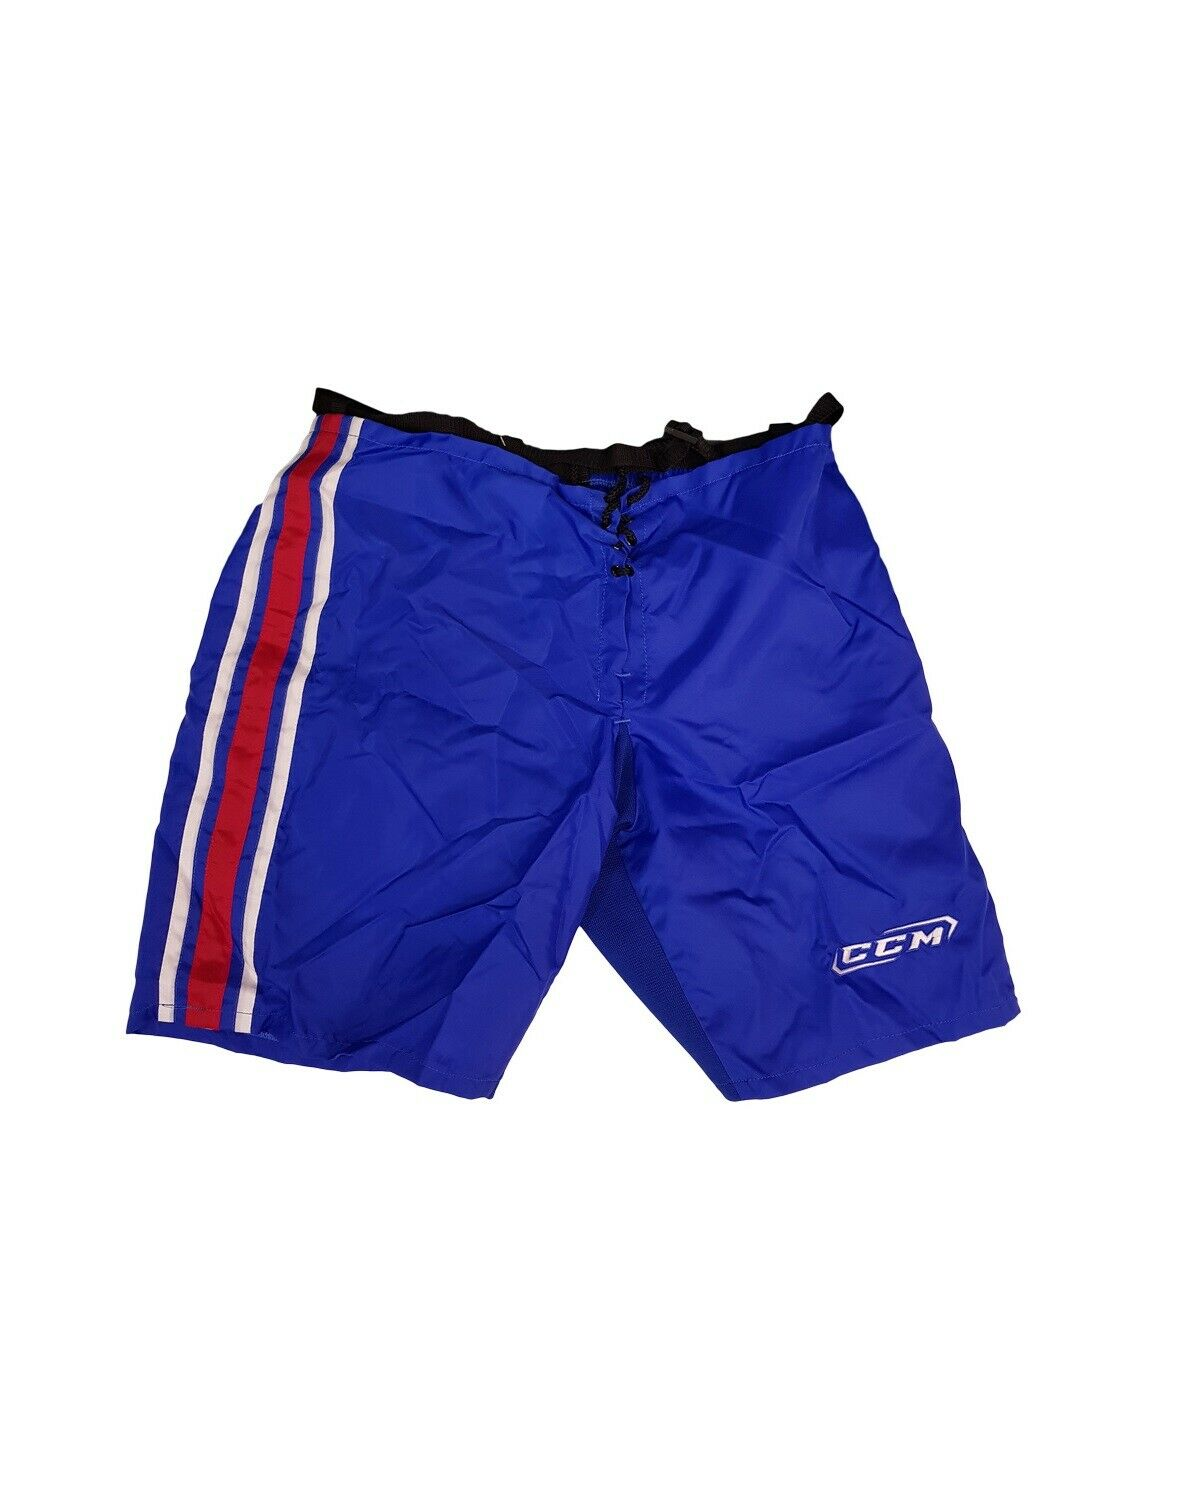 1a3a65cfa81 CCM M502 PP10 Adult Cover Pants nqsicq7806-Other Hockey Clothing   Gear